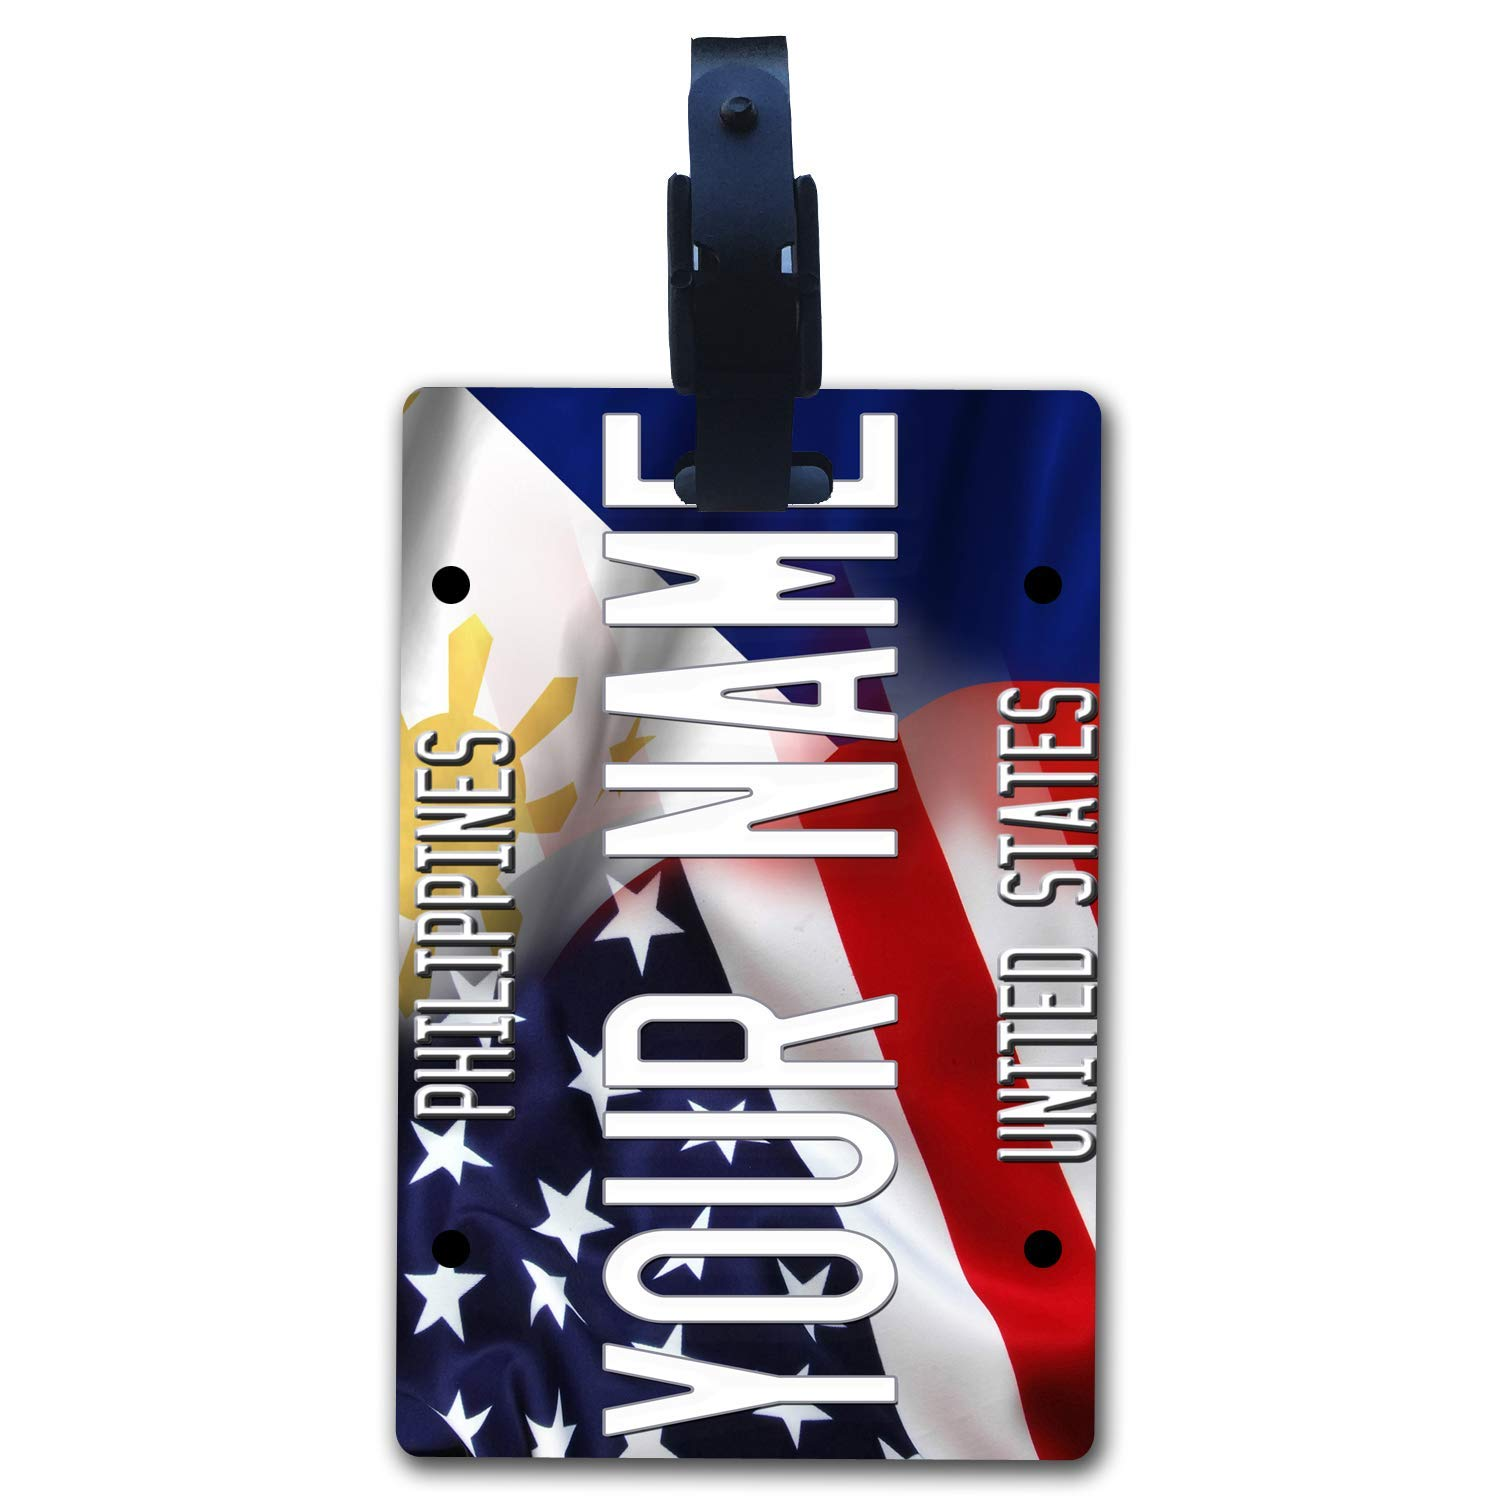 BRGiftShop Personalize Your Own Hockey Team Nashville Luggage Tag with Address Card Holder